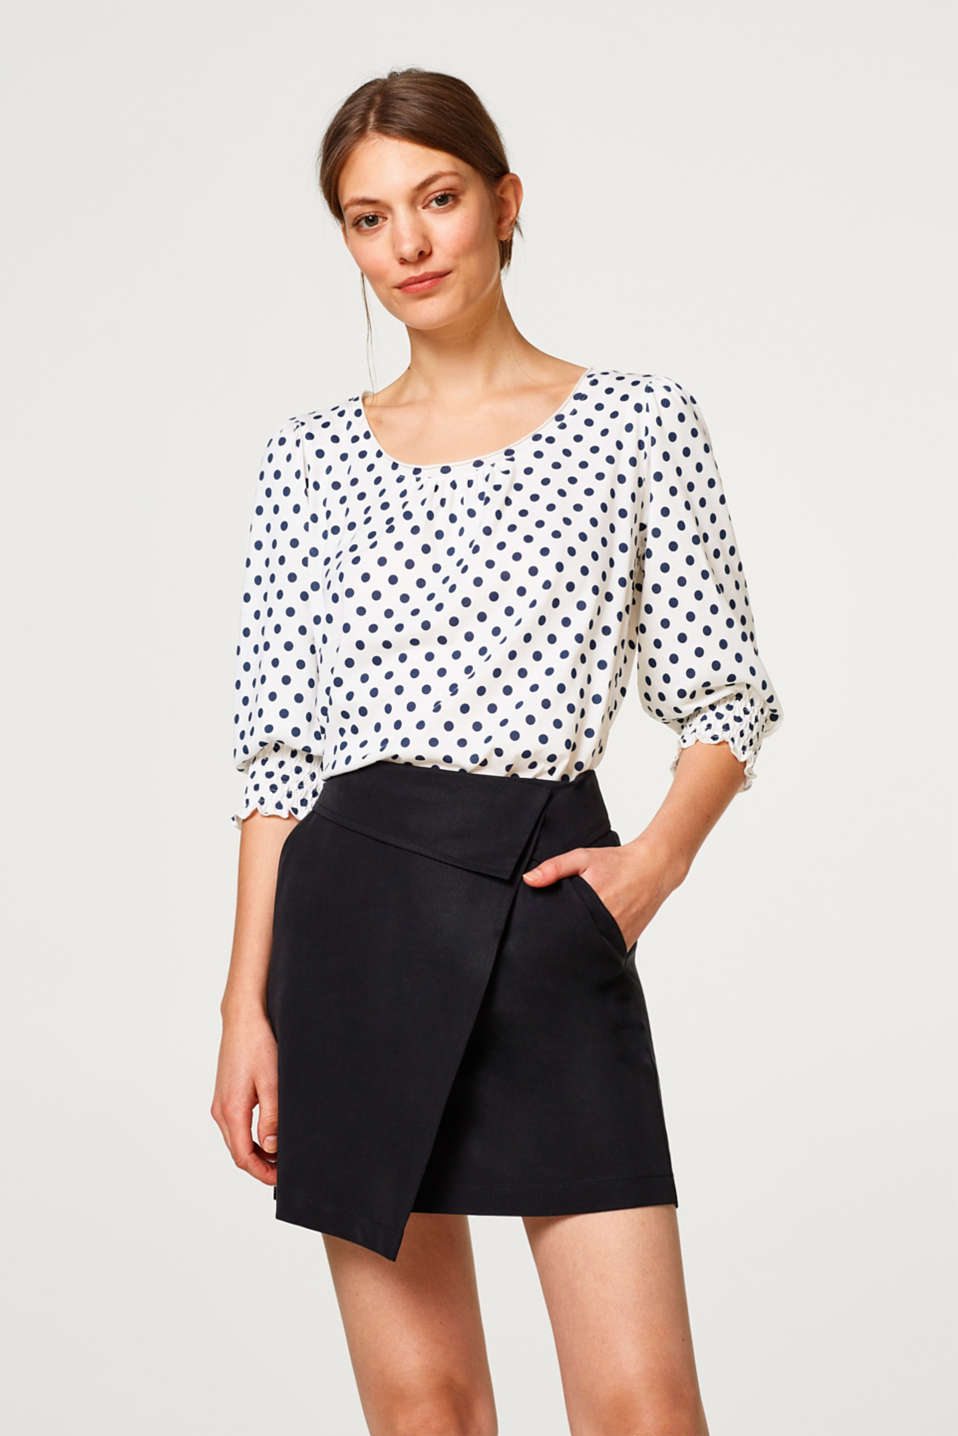 edc - Blousey jersey top with polka dots